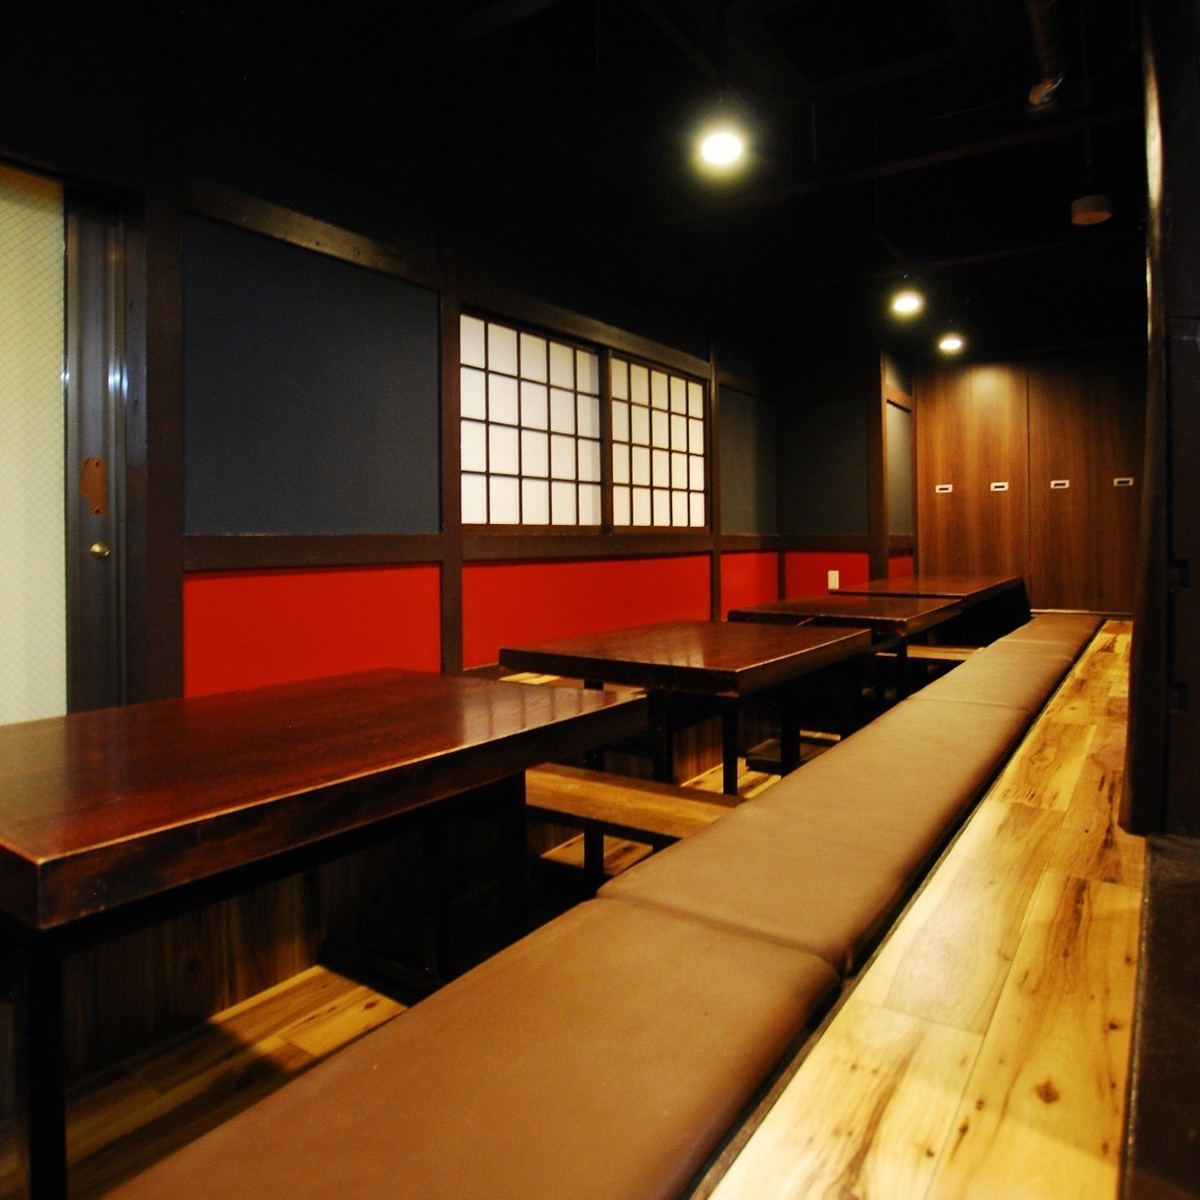 ♪ seat for about 20 people from drinking party with a small group ♪ 【Izakaya Yakitori Drink as much as you can Atsugi】